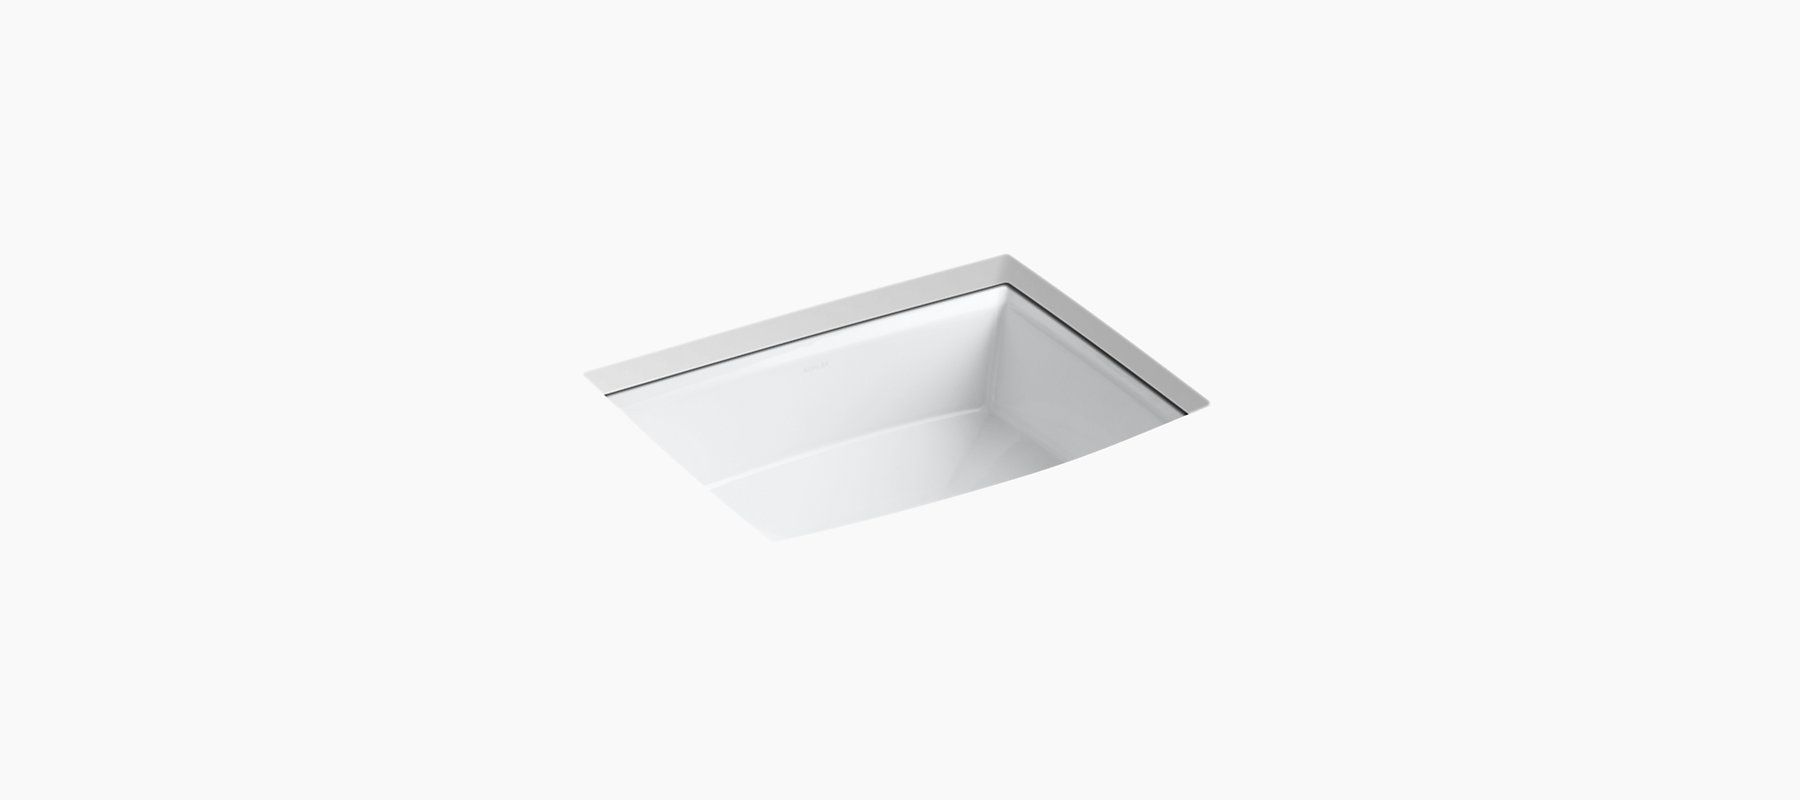 detailed with beveled edges, the k-2355 sink coordinates with ... - Kohler Archer Lavabo Con Piedistallo